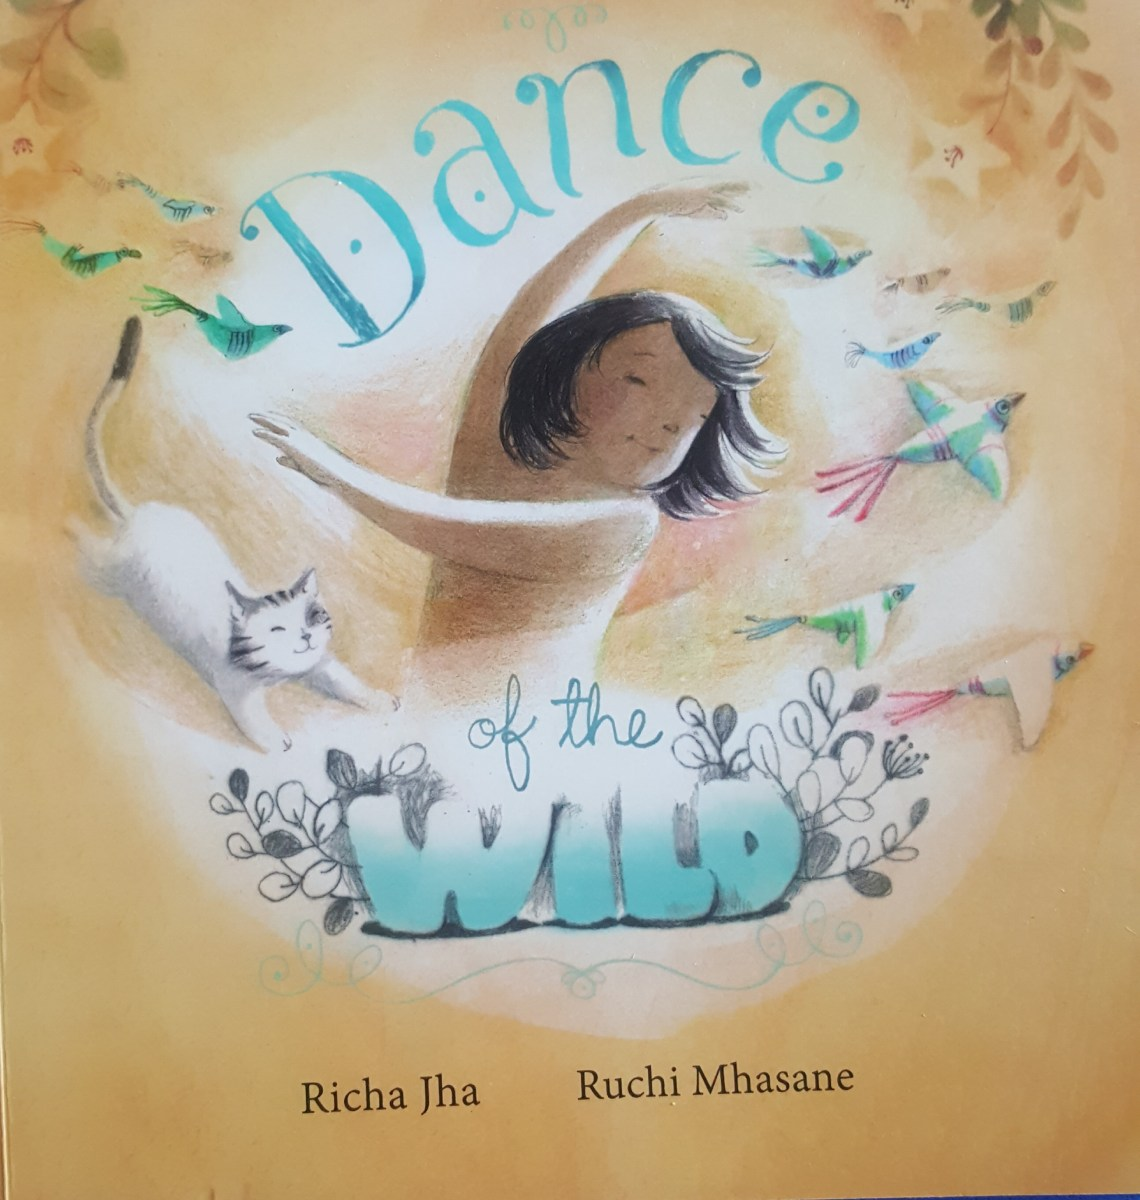 Dance of the Wild by Richa Jha - A book review